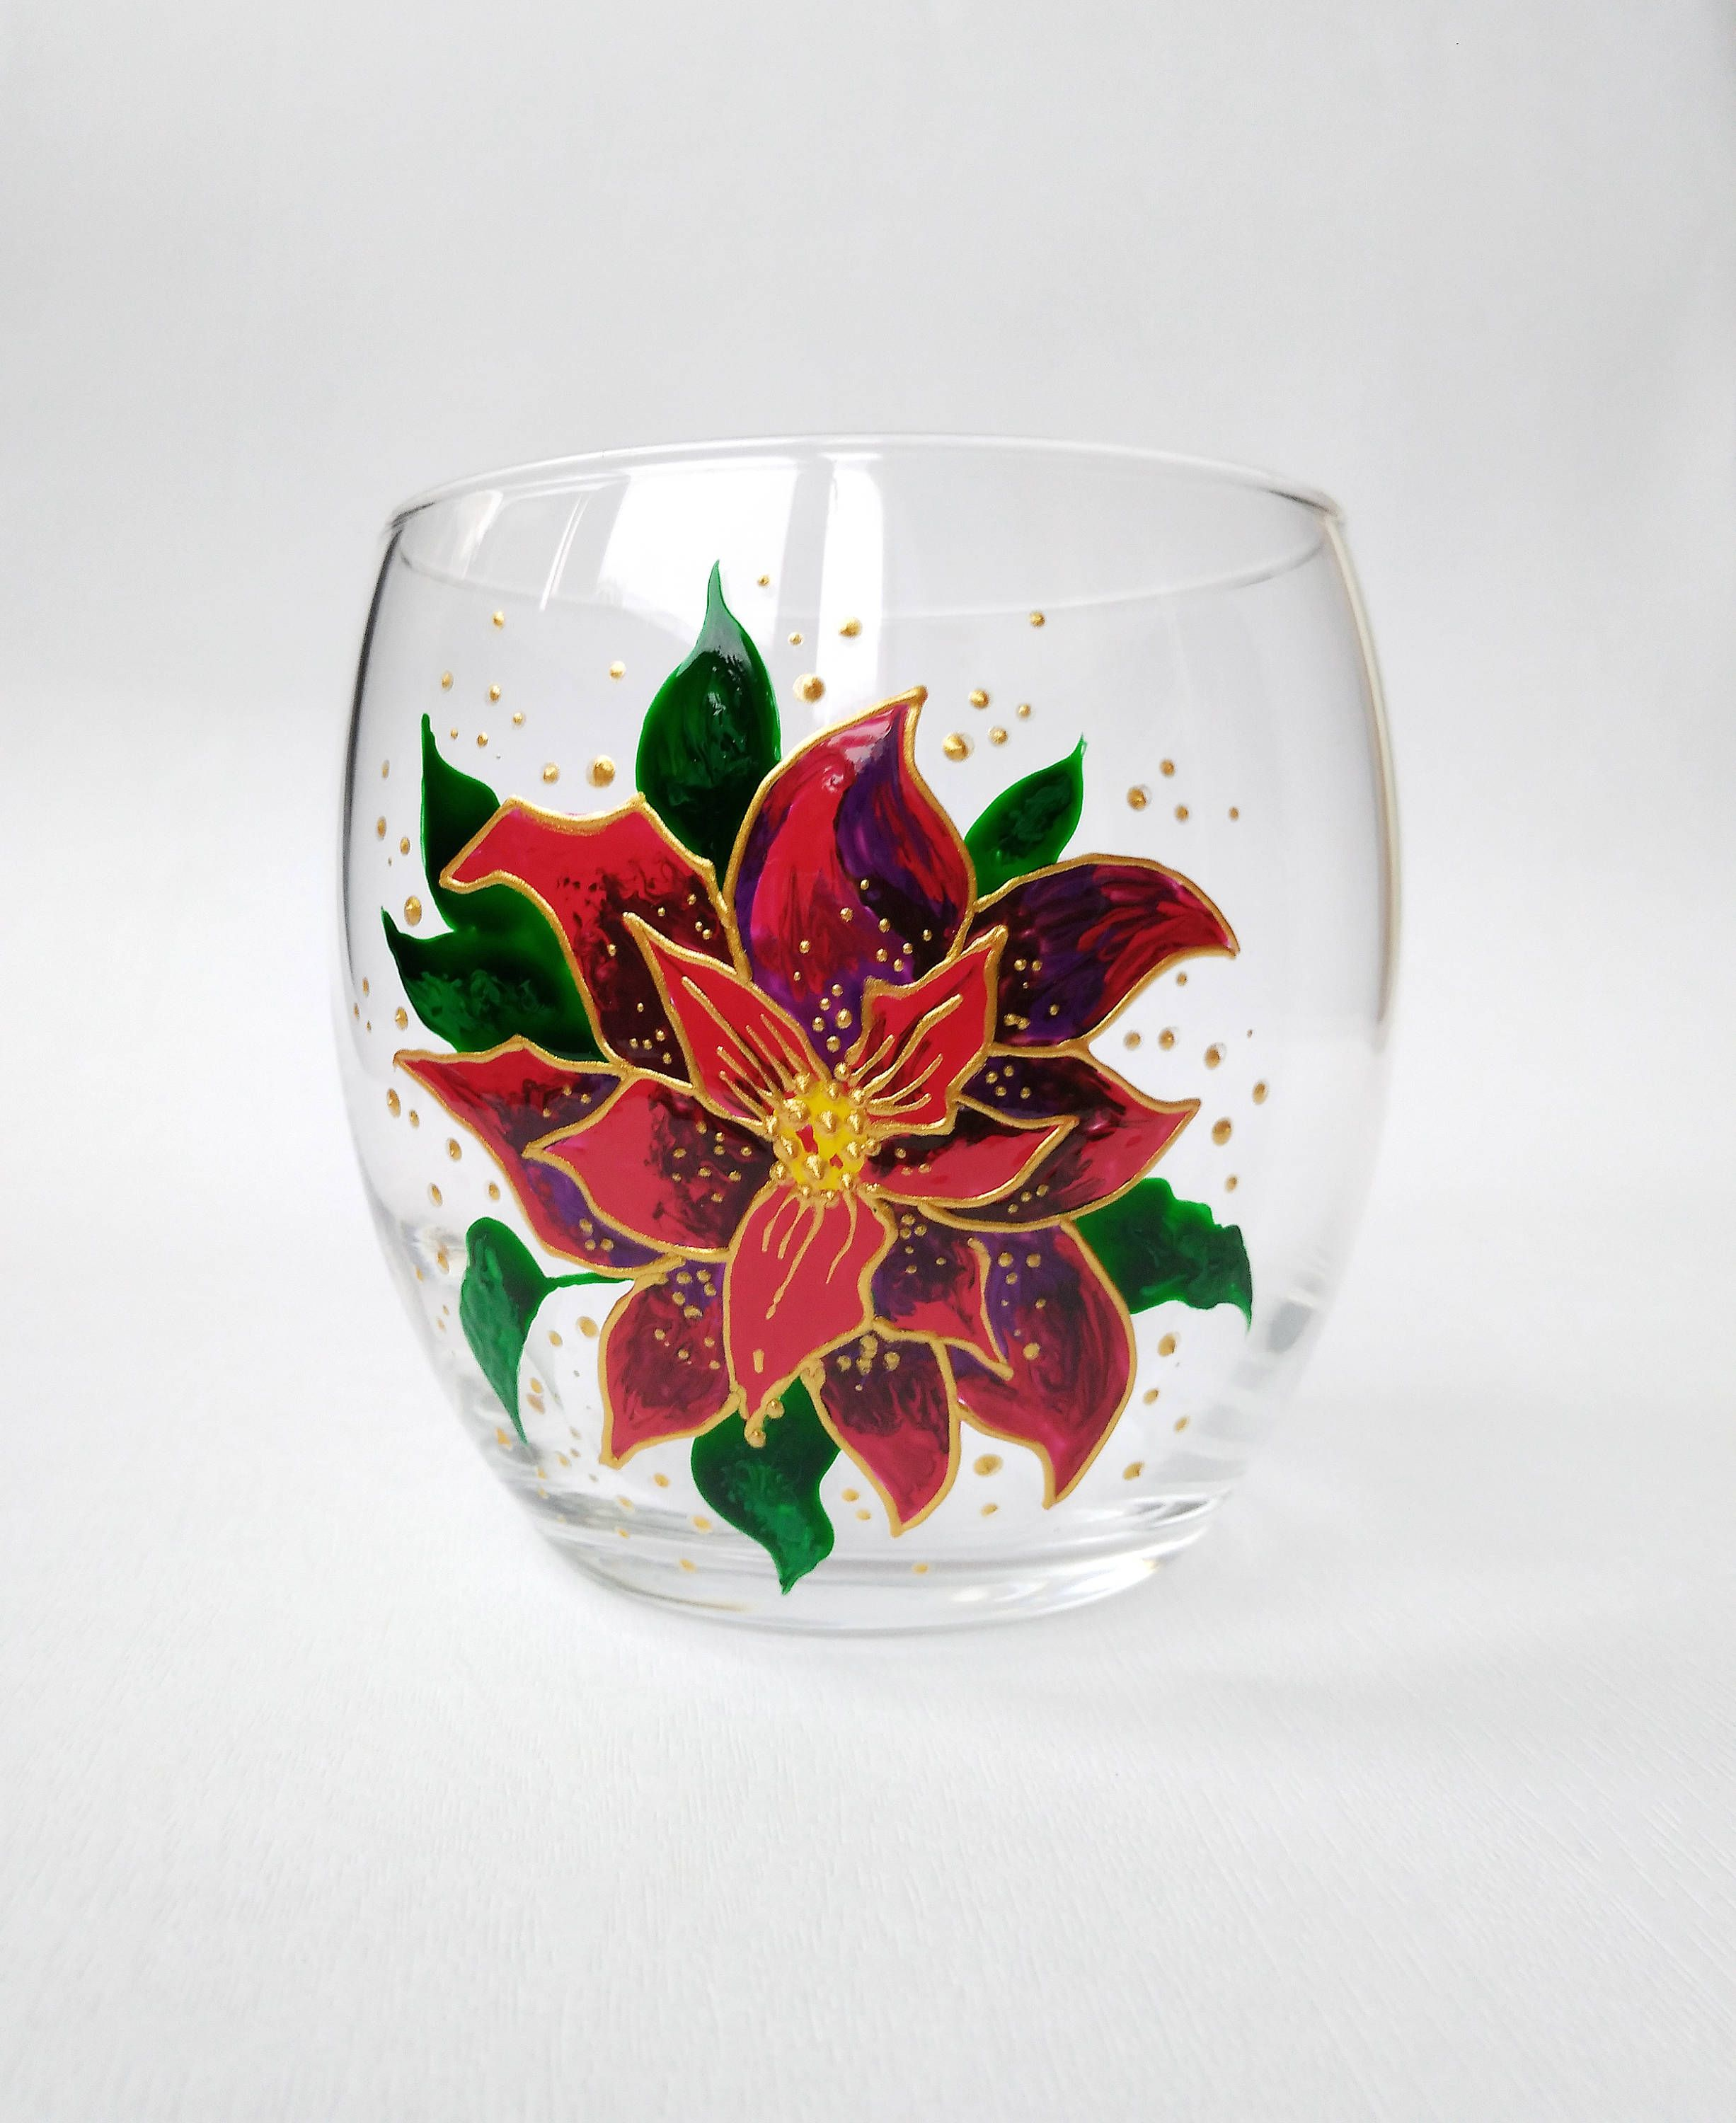 Christmas Gift Poinsettia Wine Glass Stemless Wine Glasses Red Flower Glasses Personalized Christmas Wine Glasses Painted Wine Glasses Christmas Glass Painting